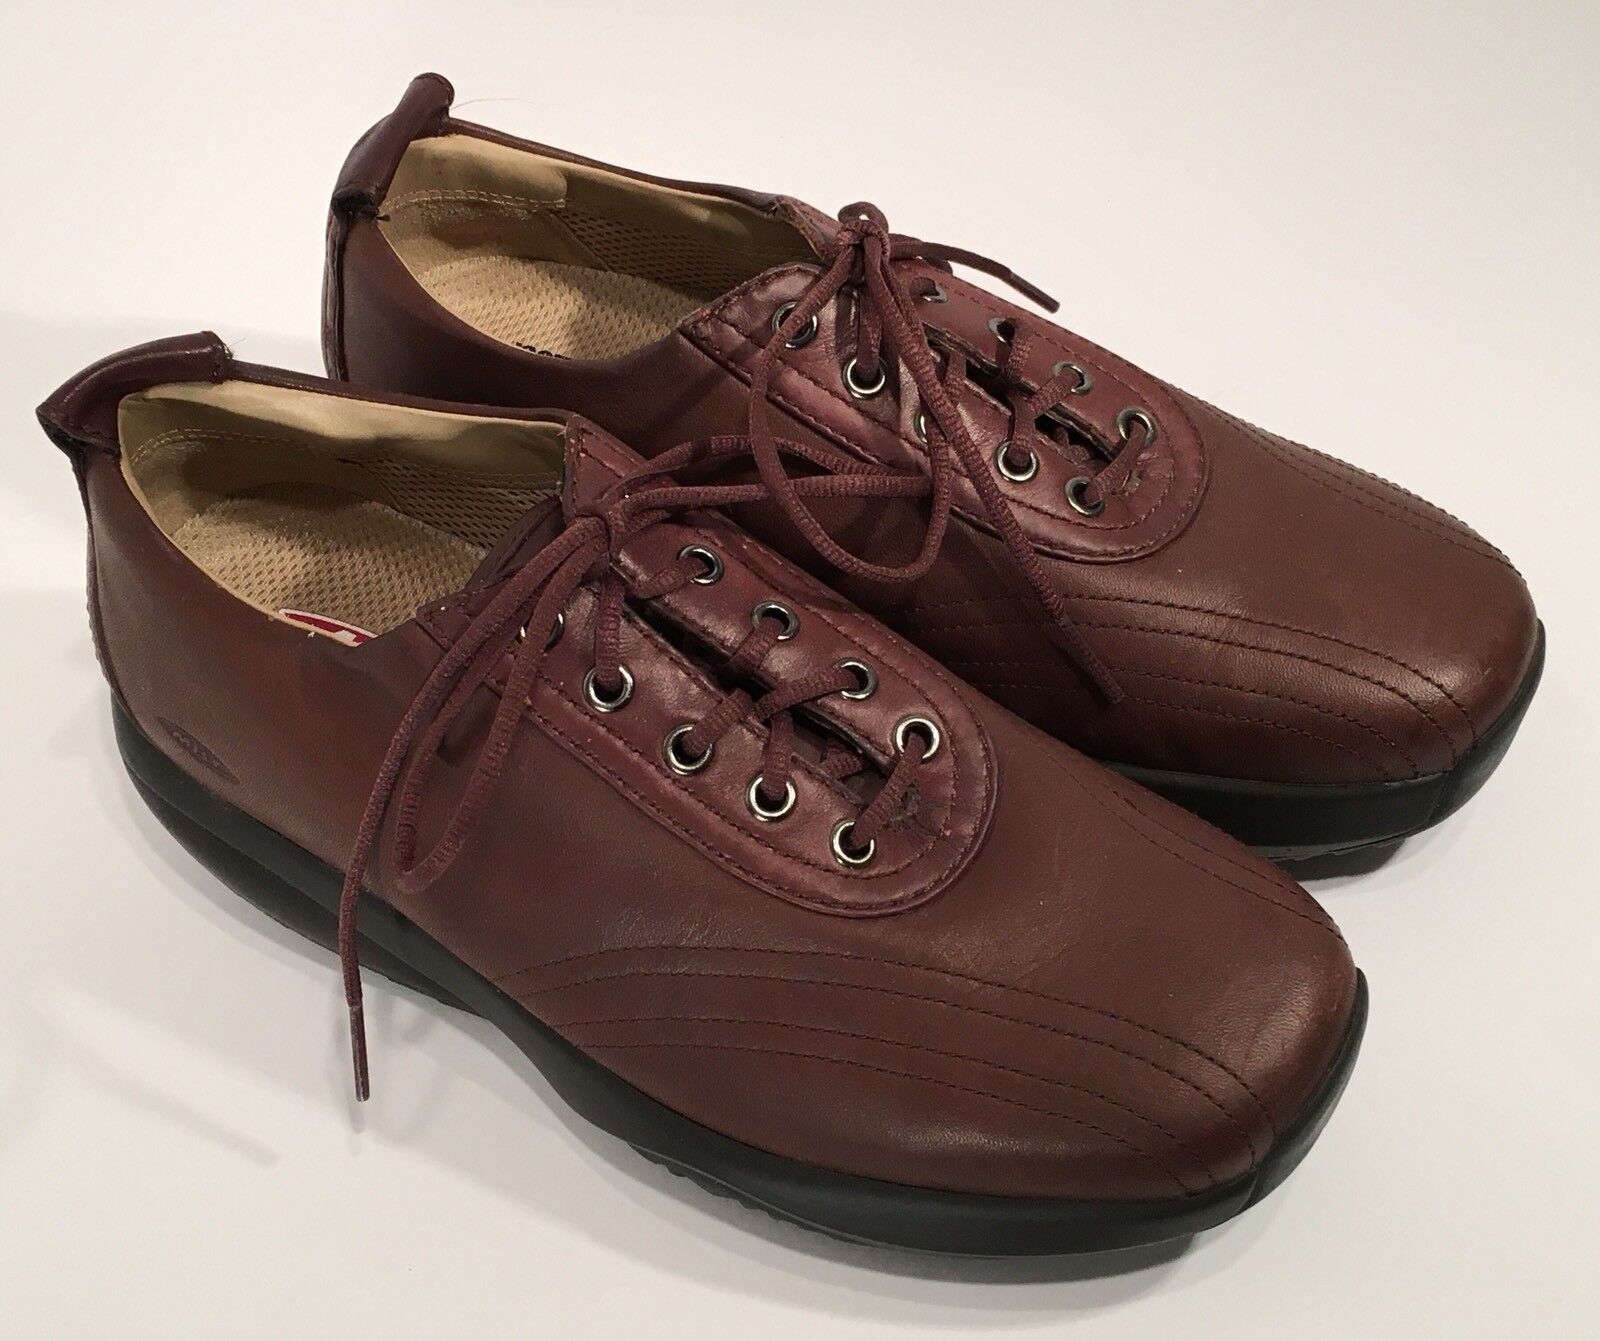 MBT Brown Leather Lace Up Rocker shoes in Womens Womens Womens 8 - GENTLY WORN 42540c